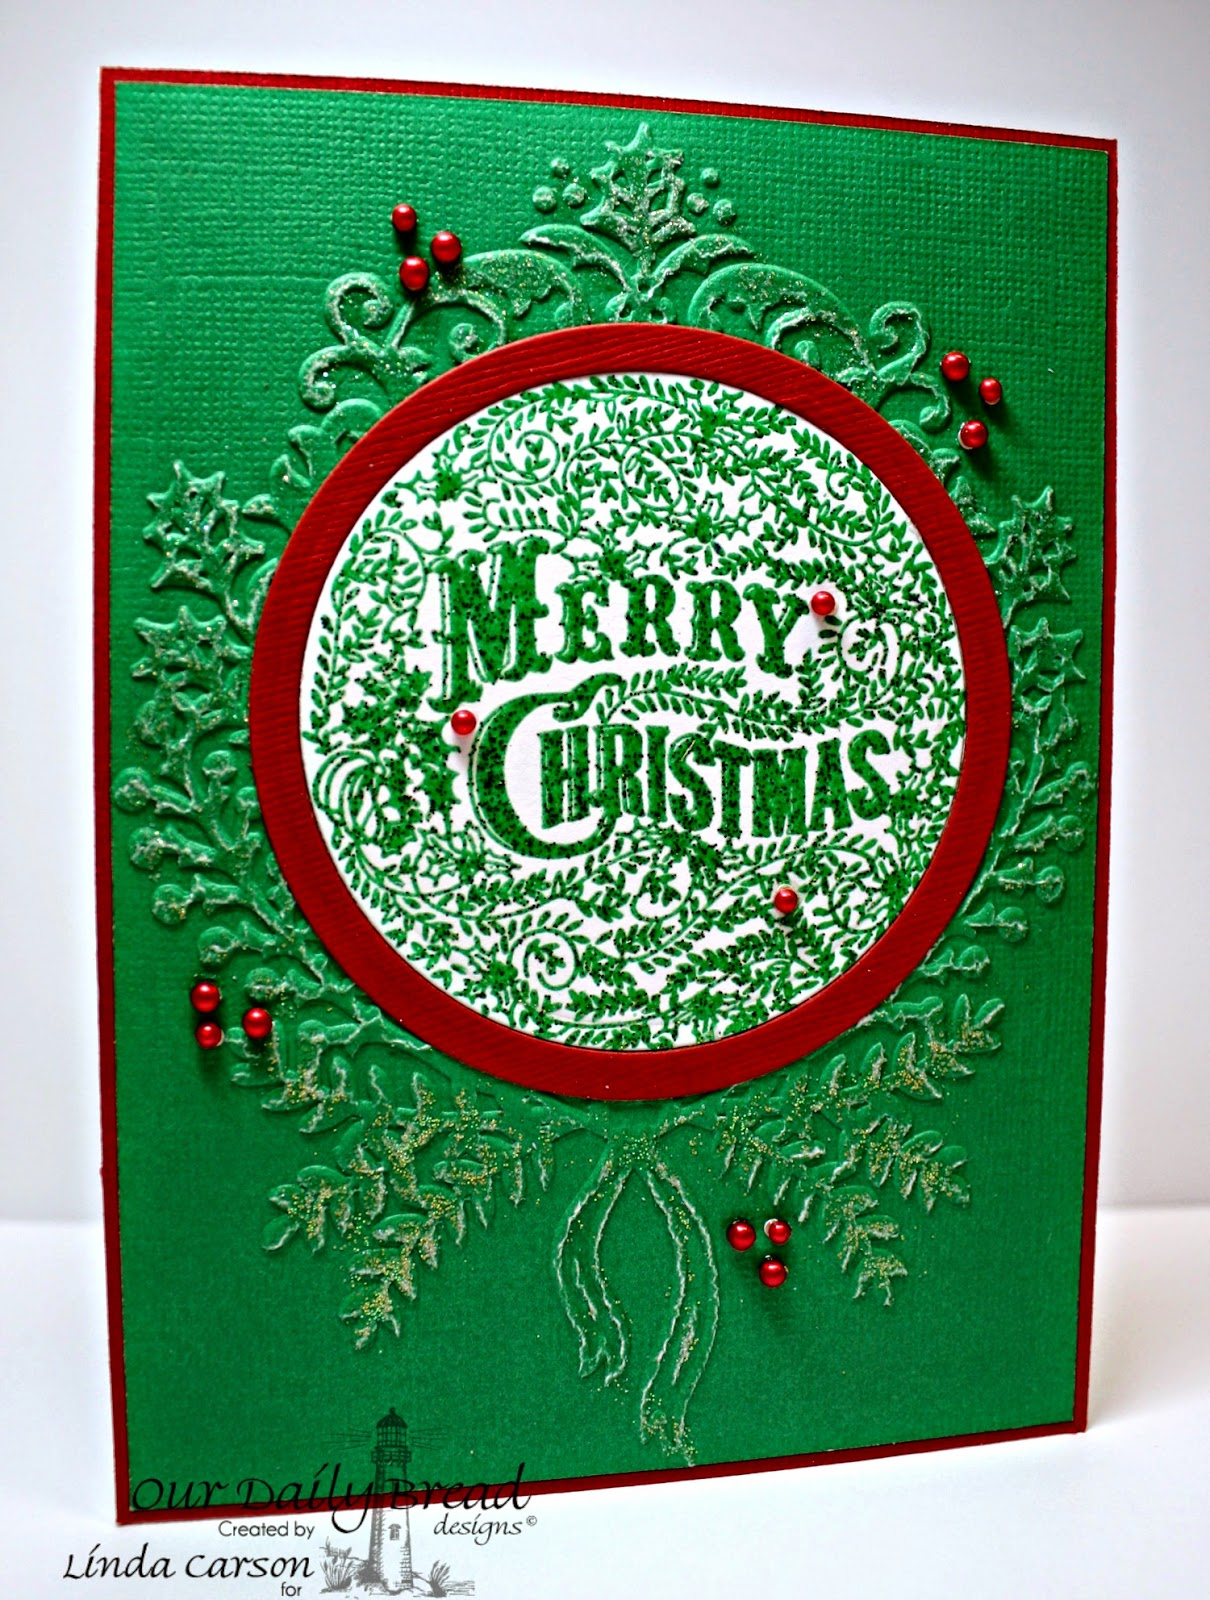 ODBD, Merry Christmas Ornament, Linda Carson